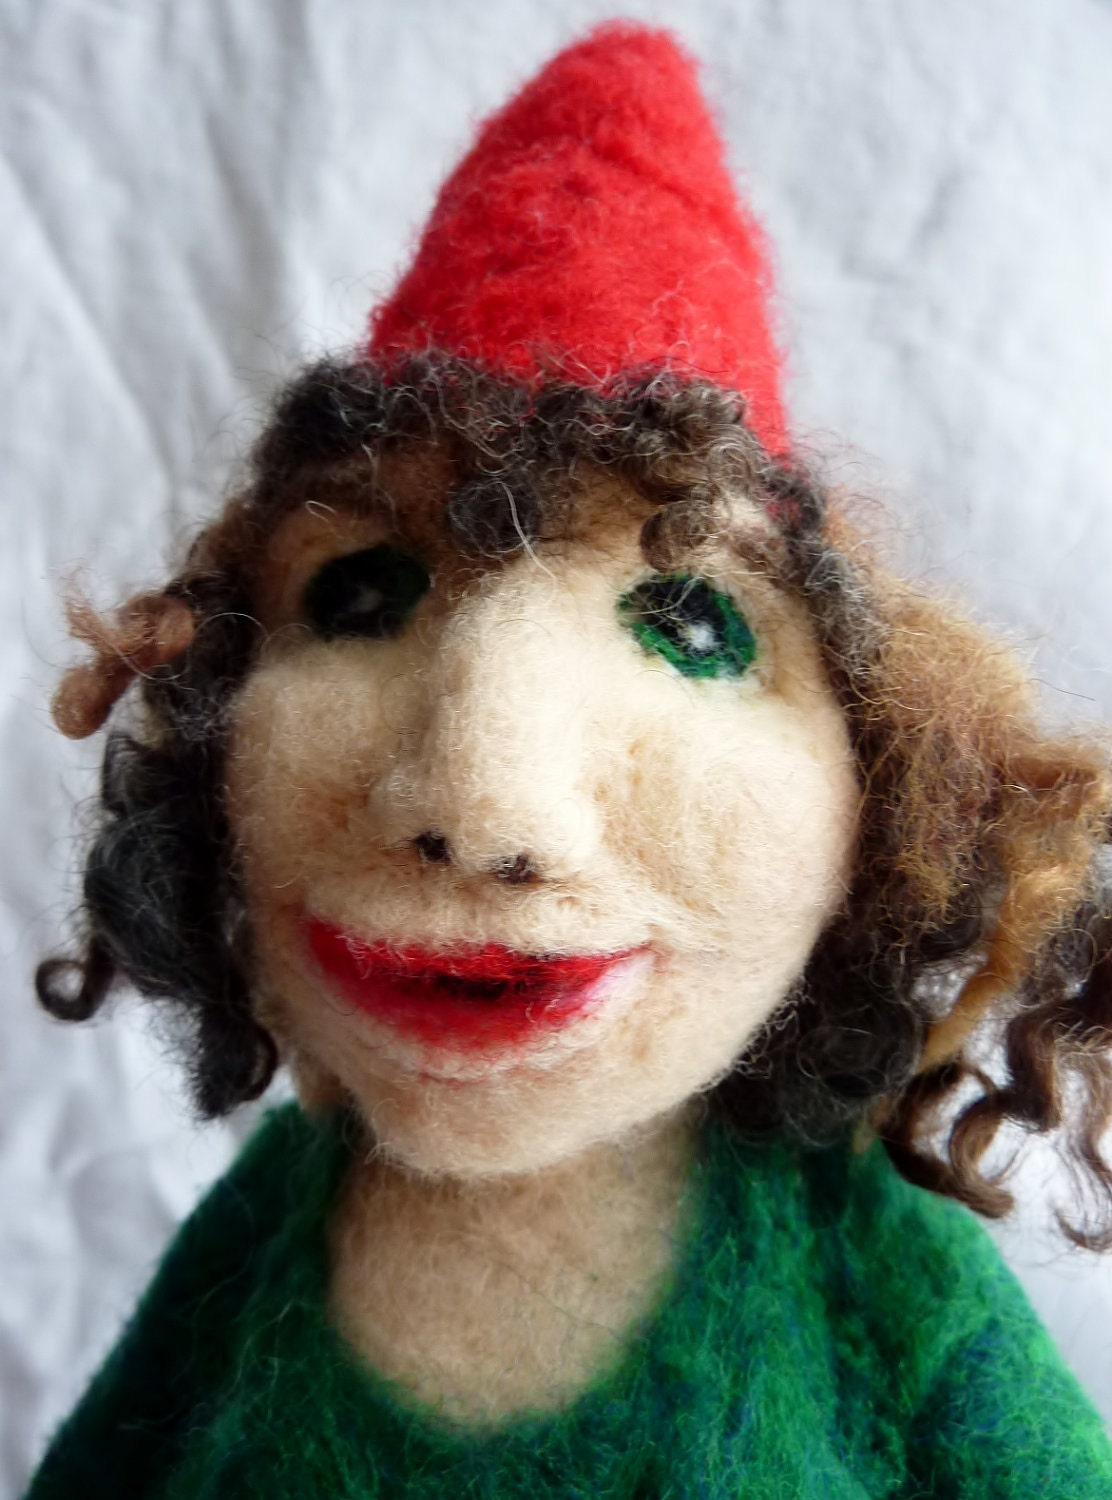 Needle Felted Gnome Girl with Felted Toadstool Mushrooms